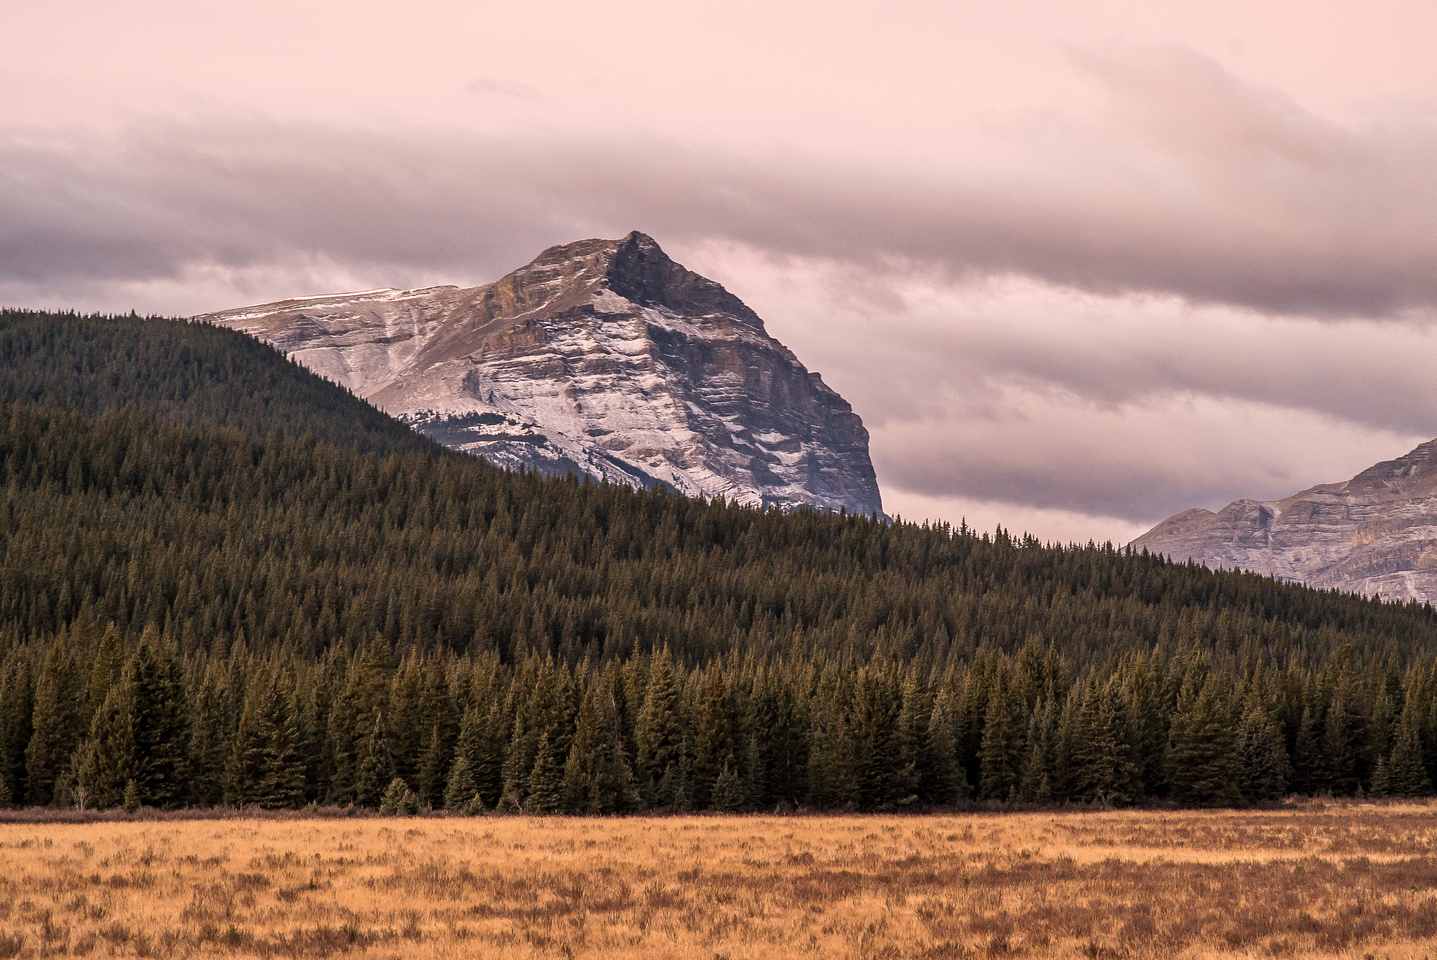 Warden Rock in early morning lighting. We would finally scramble this striking peak in March of 2015.